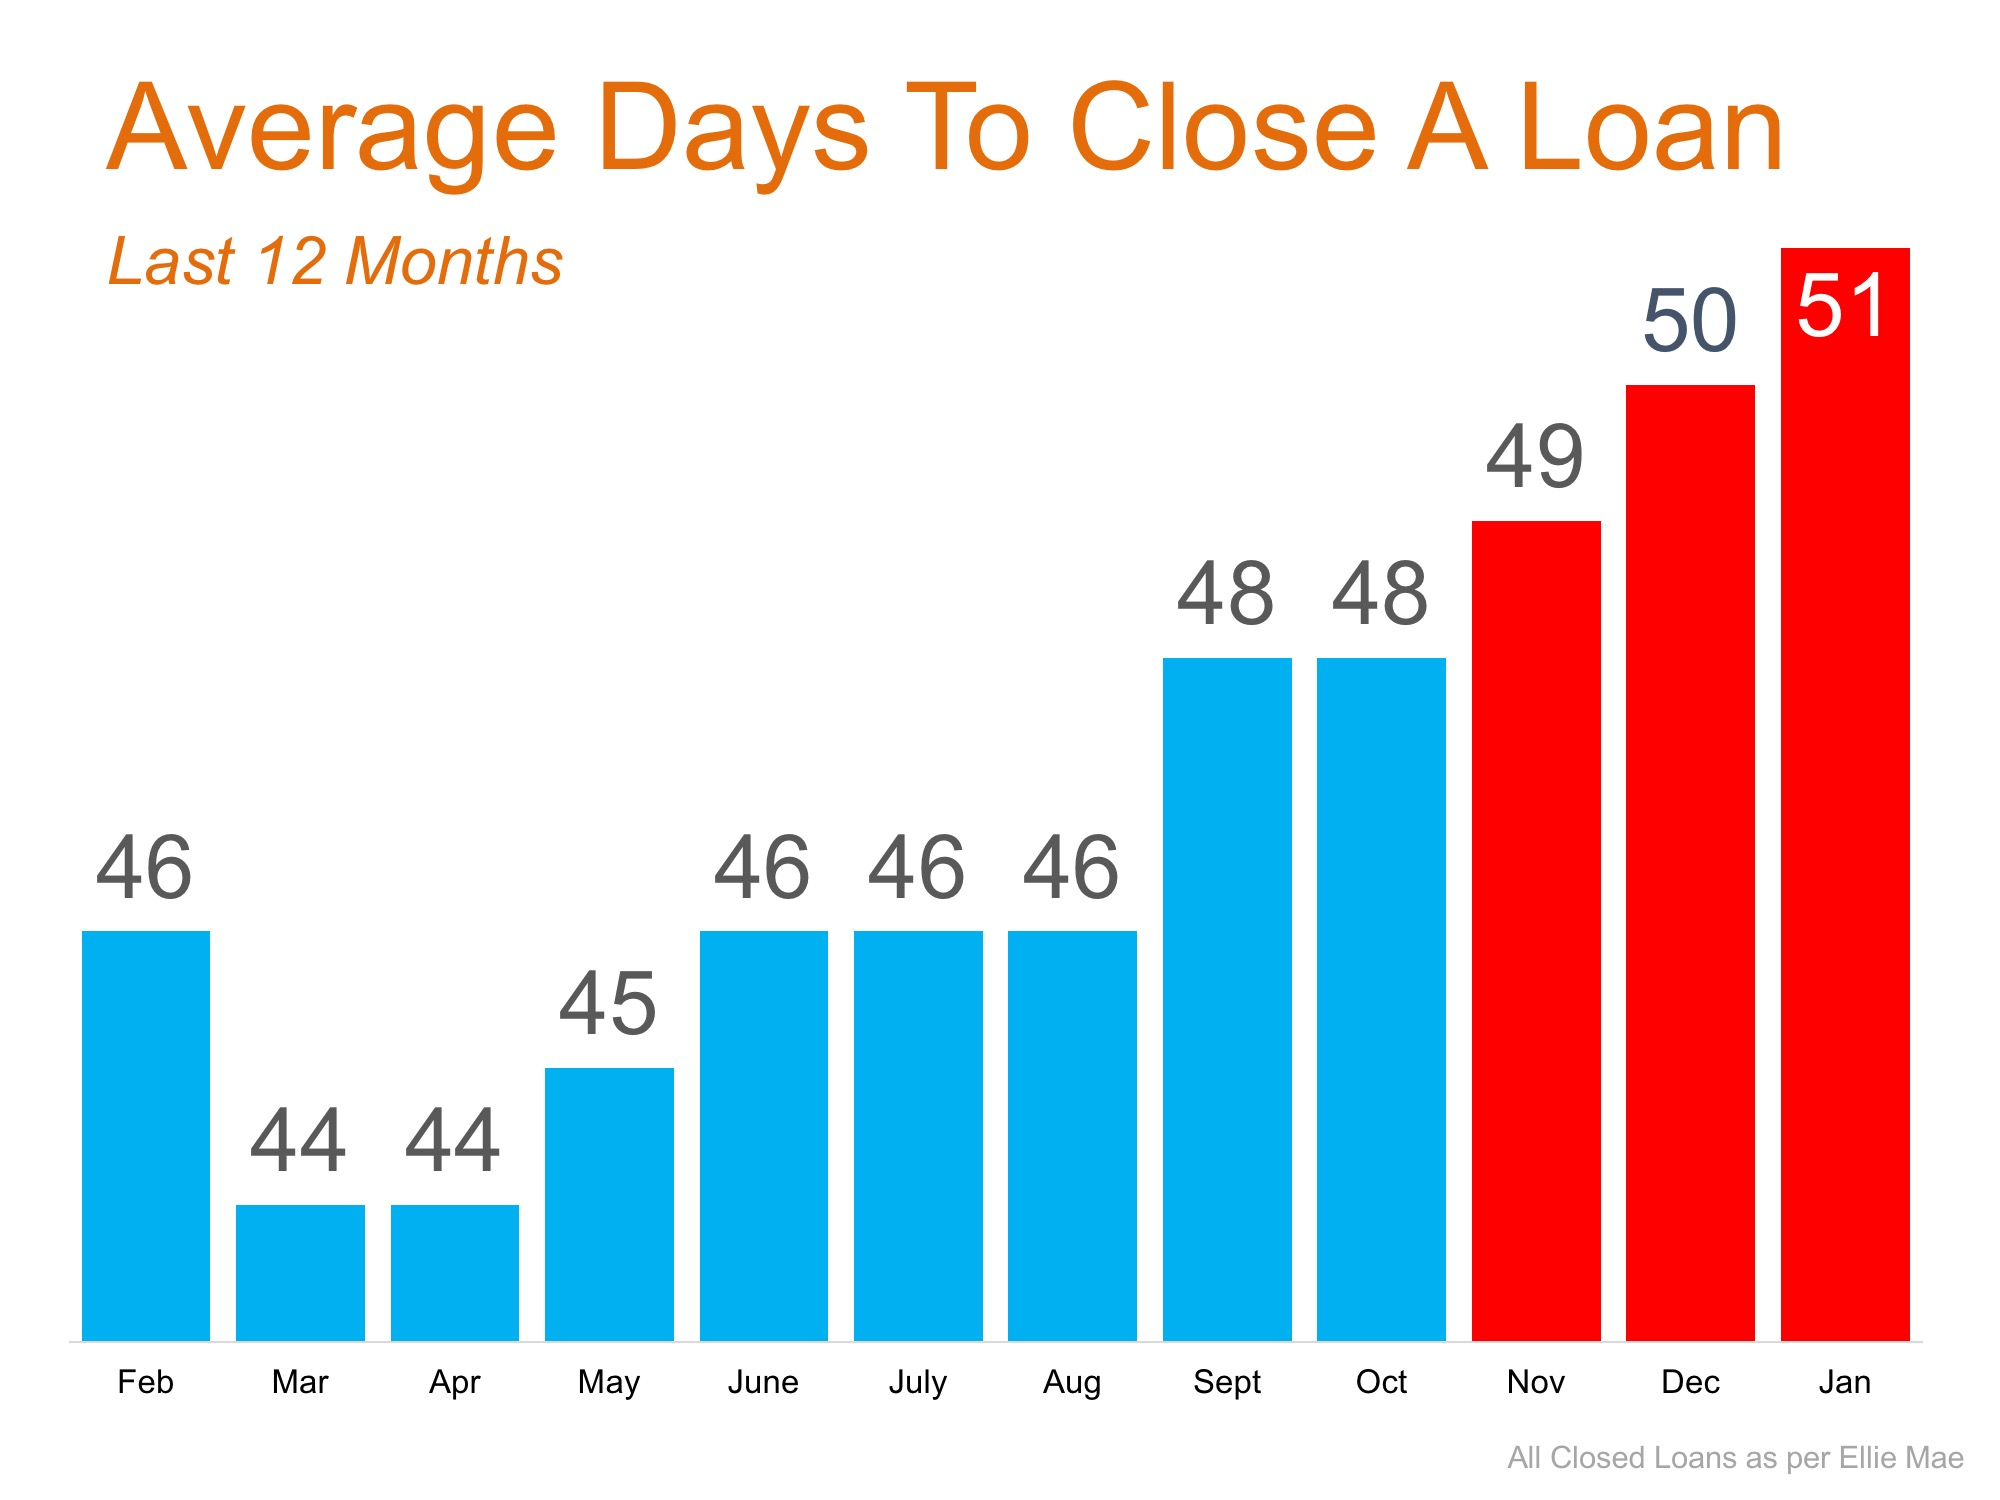 Takes other lenders 51 days ave to close loans